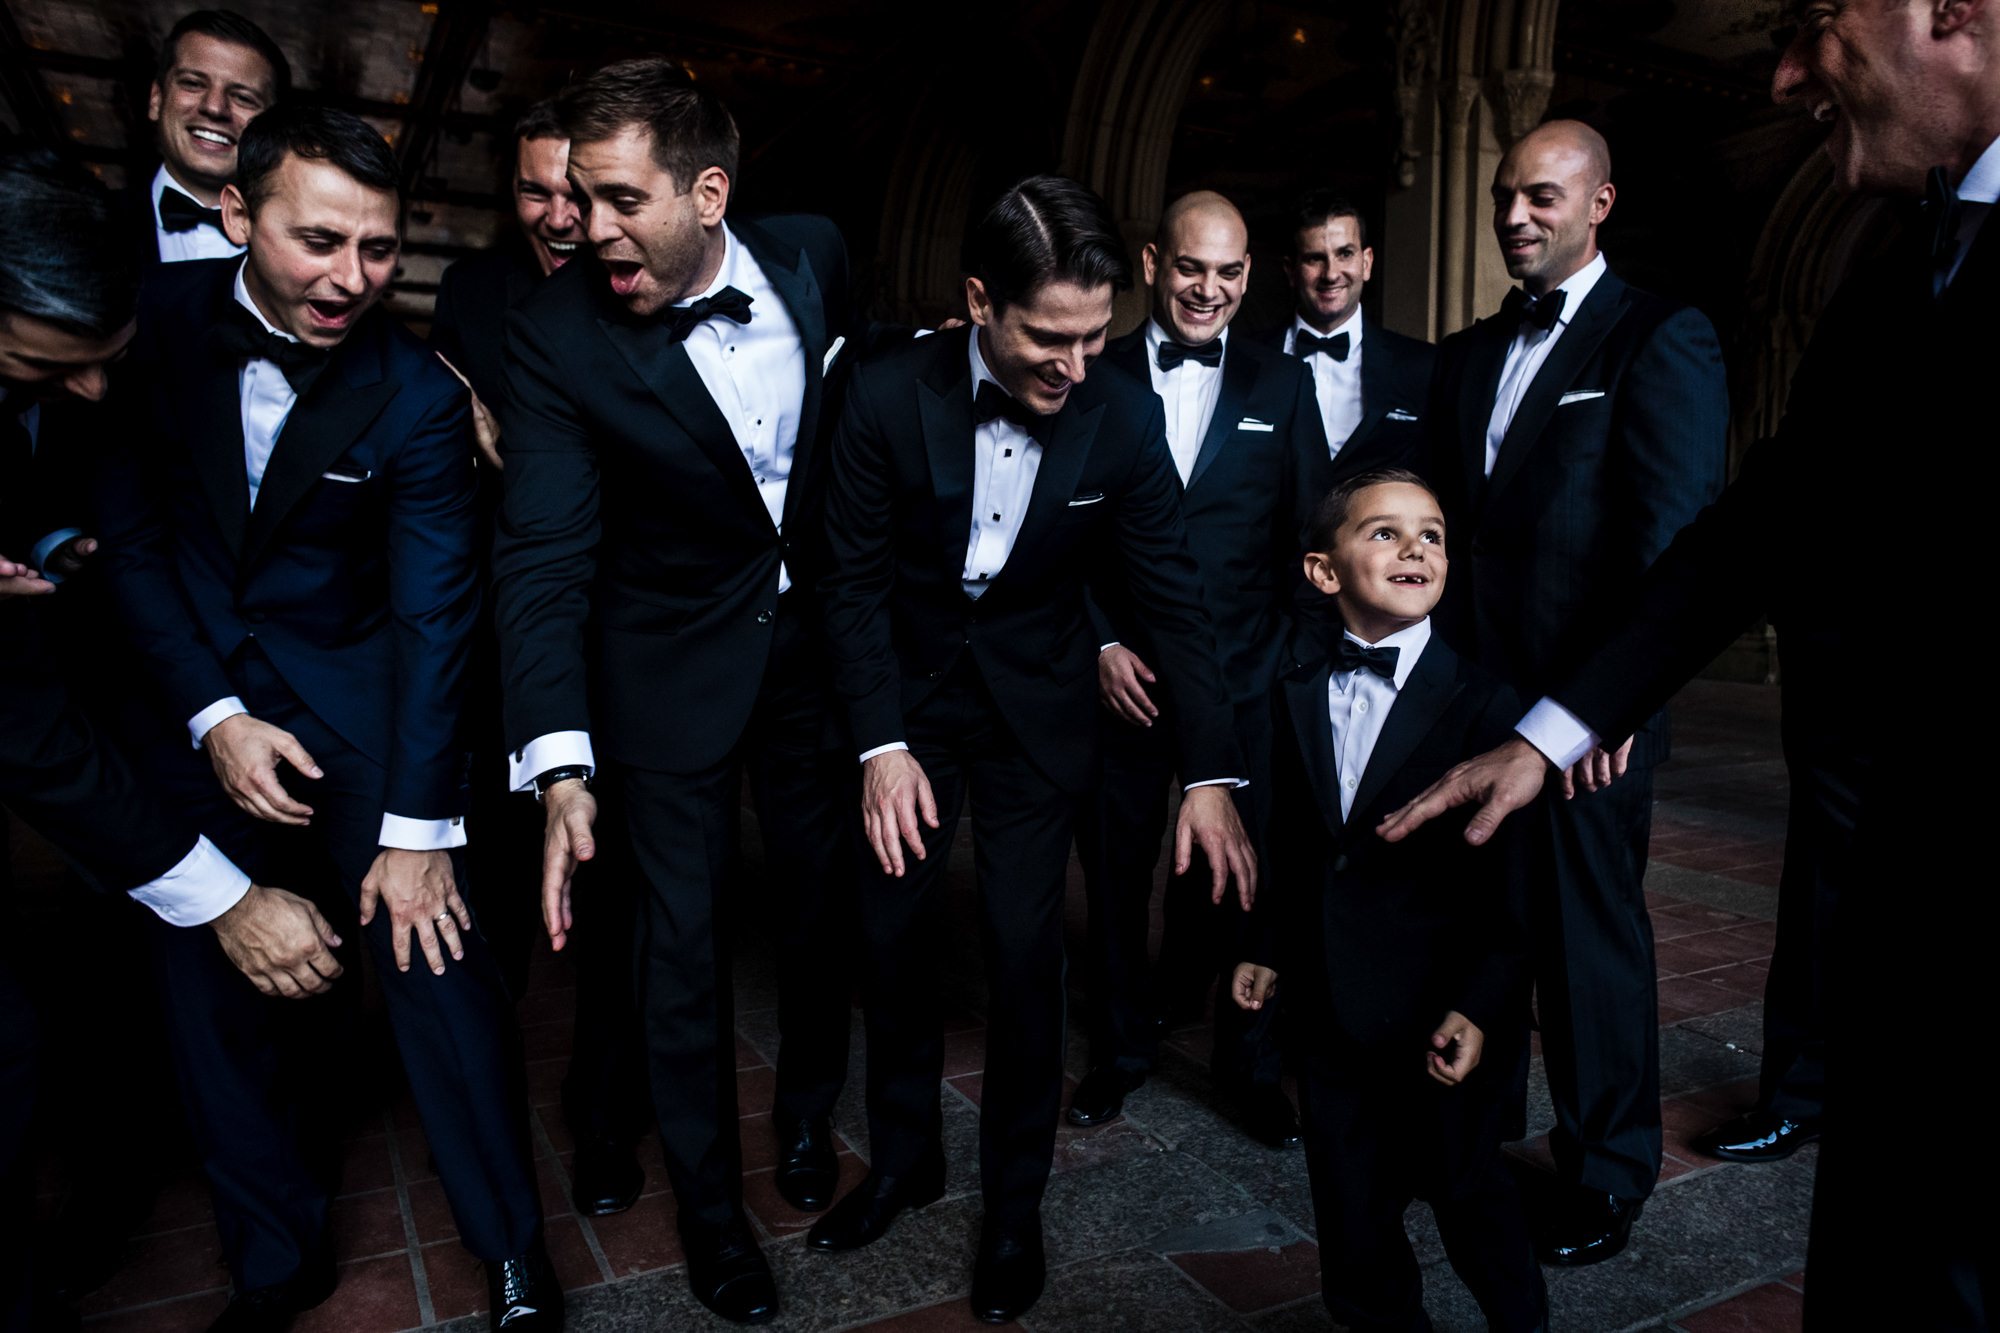 Groomsmen with little boy in tux - photo by Jag Studios